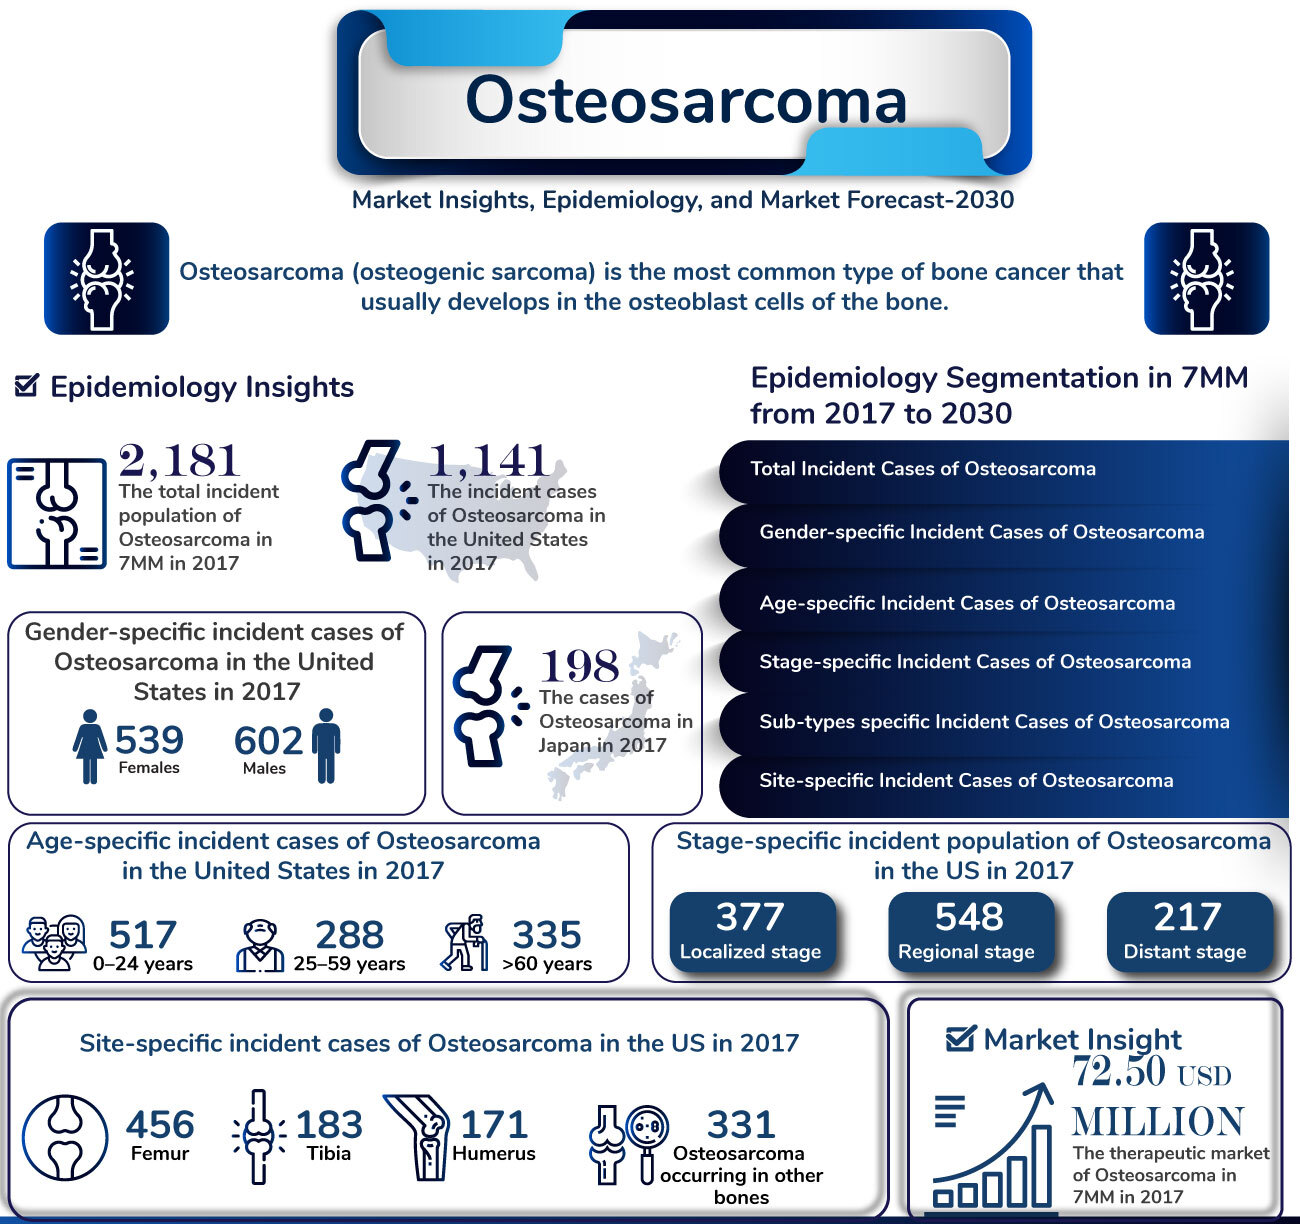 Osteosarcoma Market Insights, and Market Forecast by DelveInsight